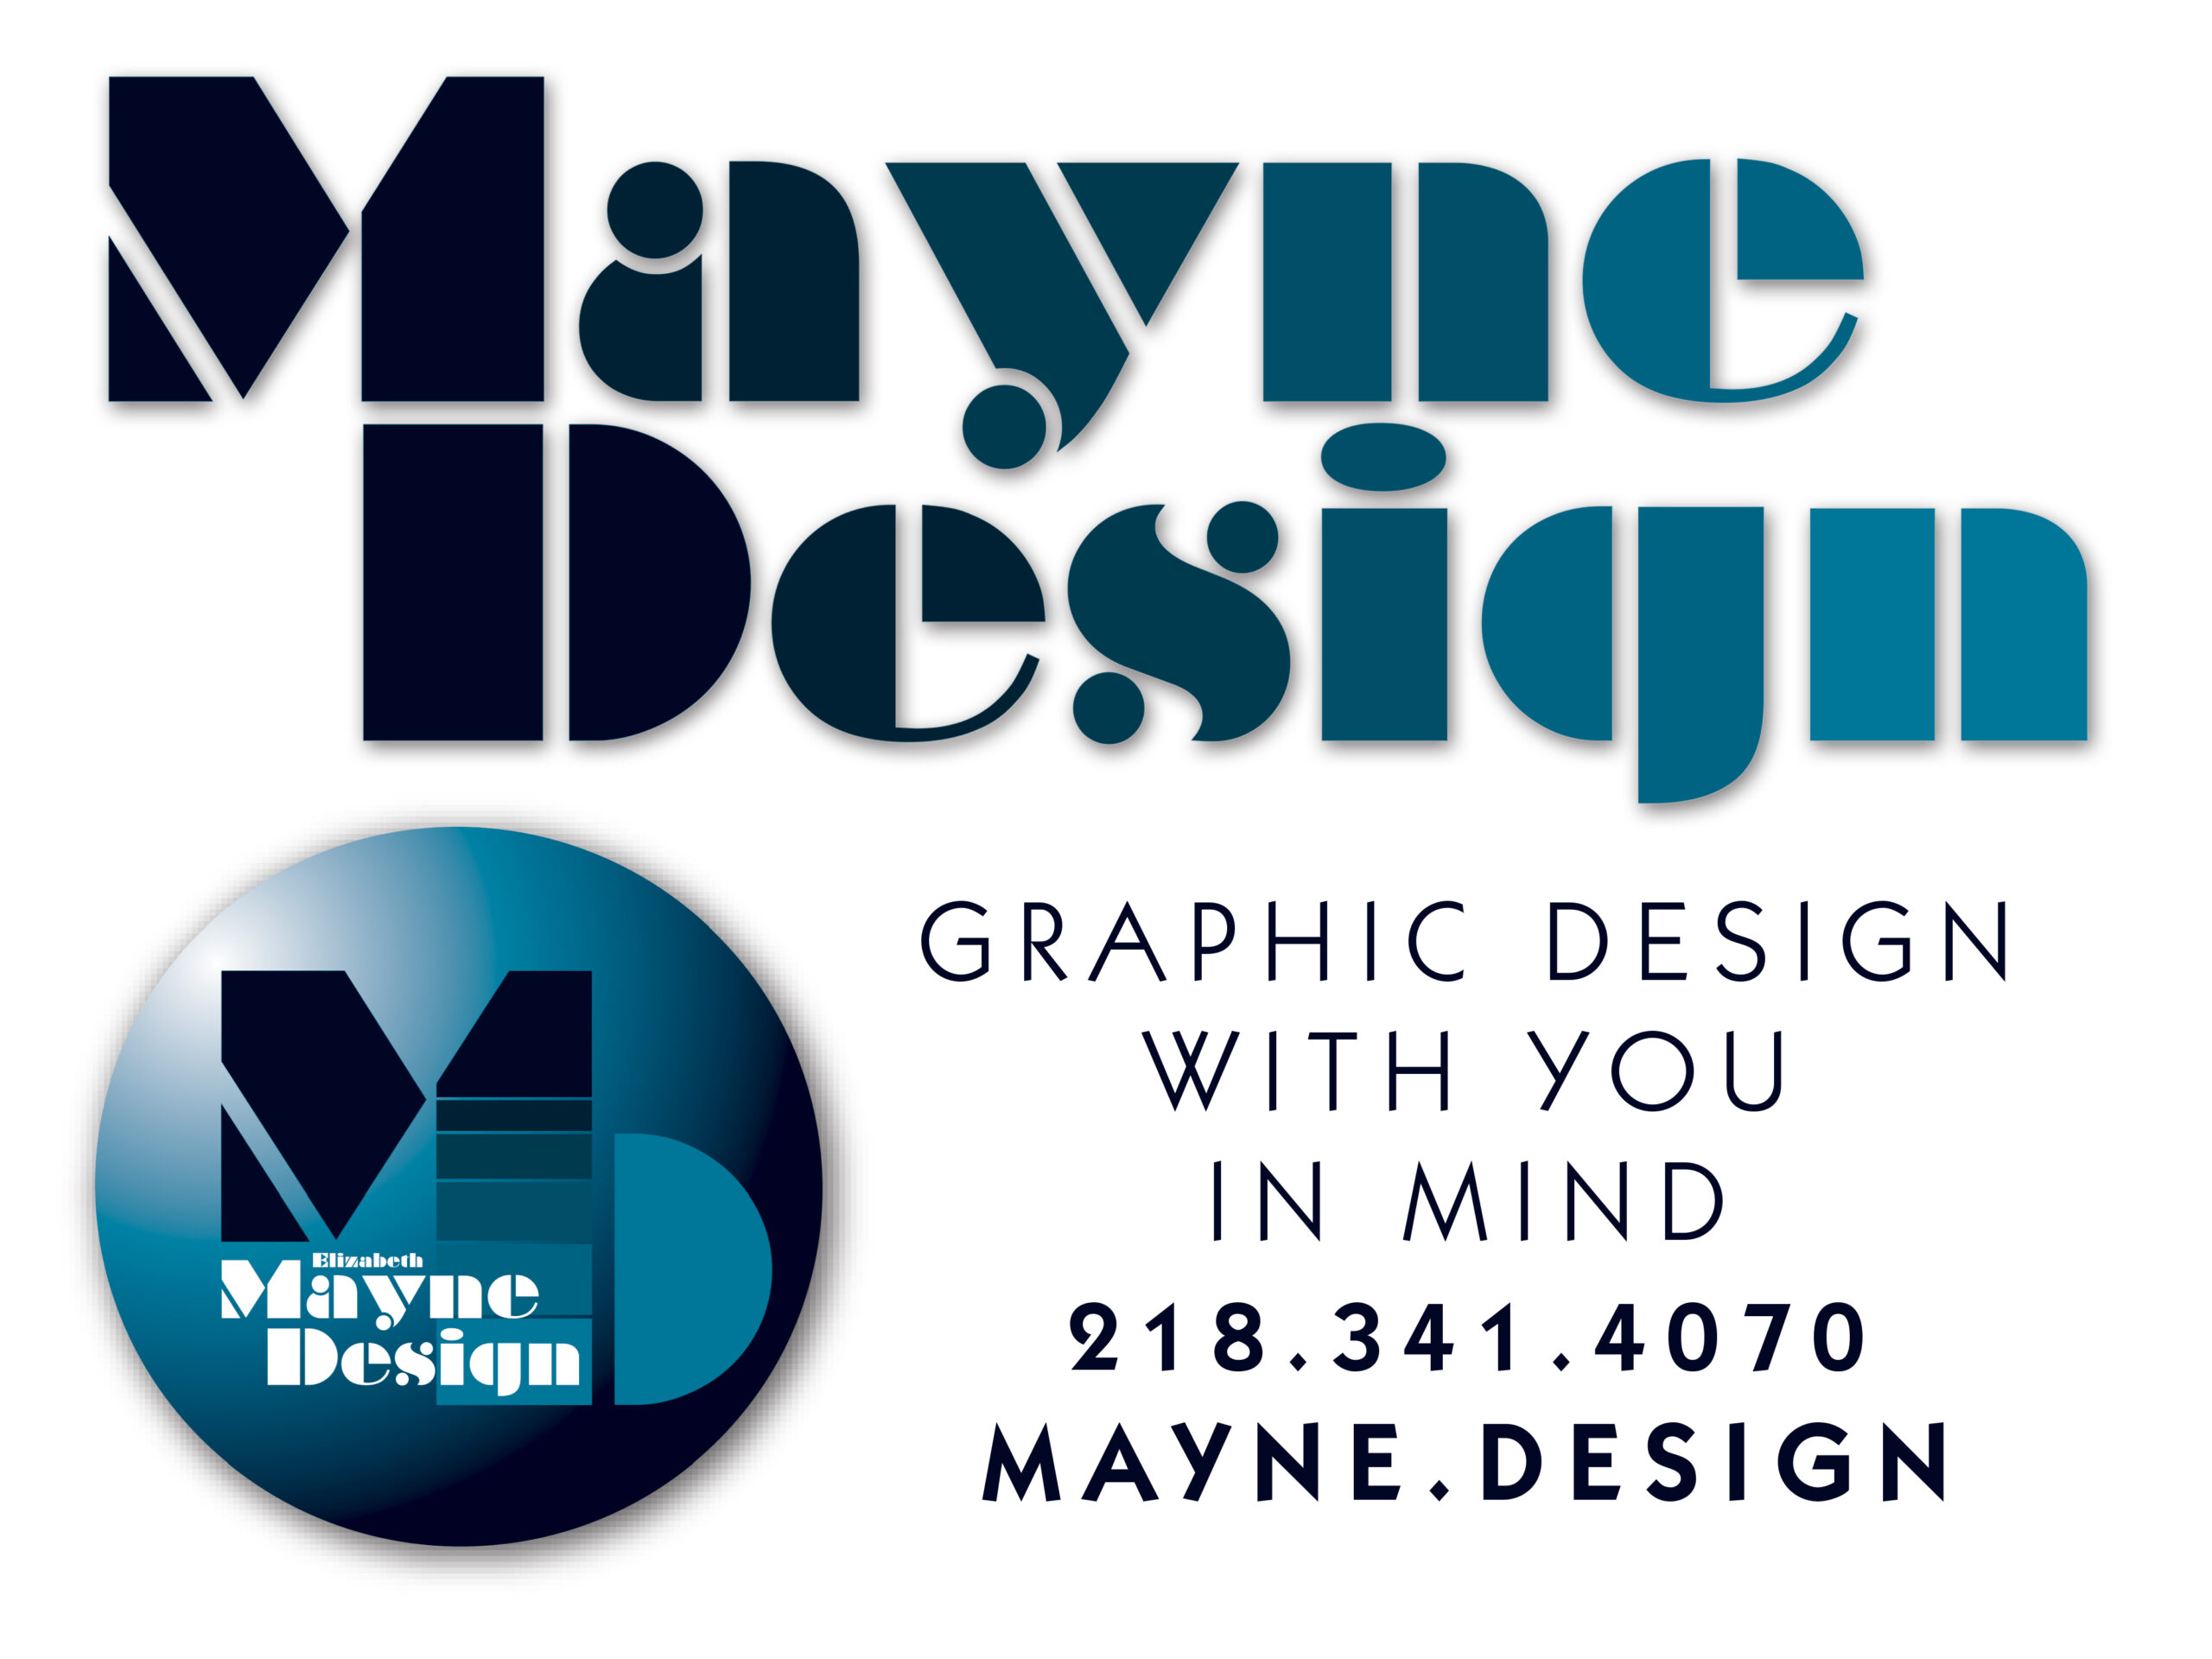 Mayne Design logo - Graphic Design with You in Mind